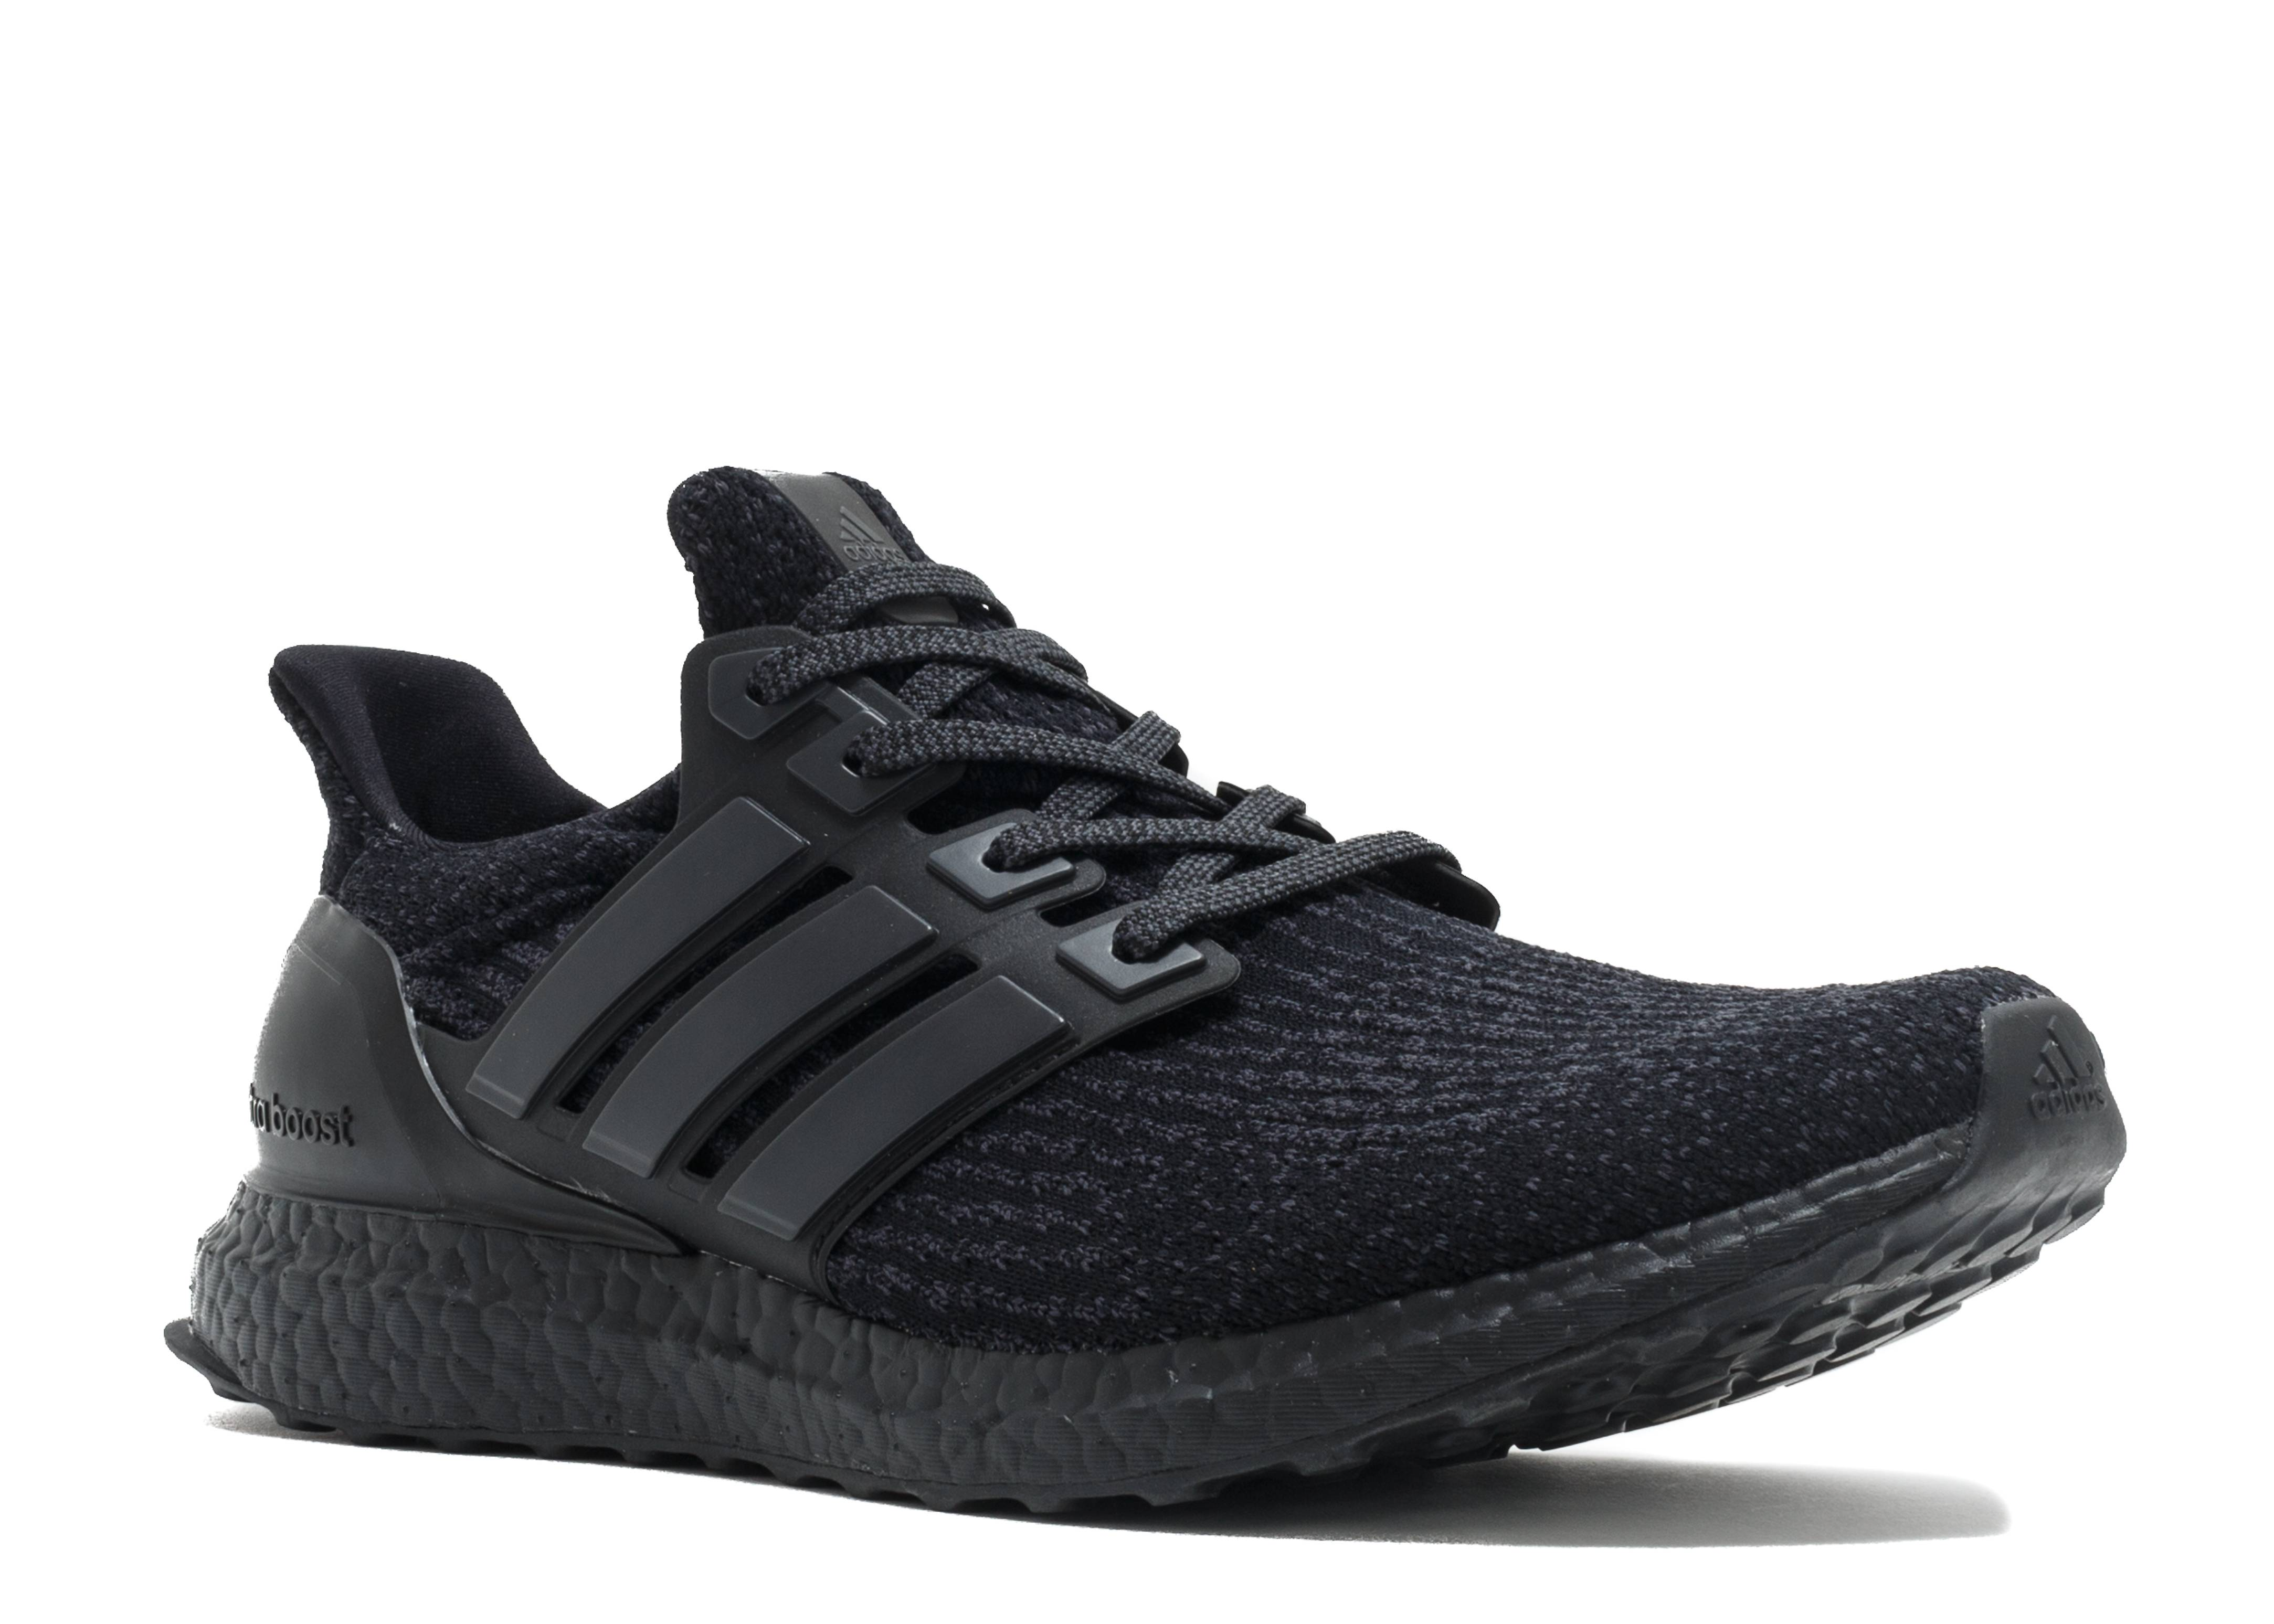 adidas ultra boost triple black 3 0 wallbank. Black Bedroom Furniture Sets. Home Design Ideas